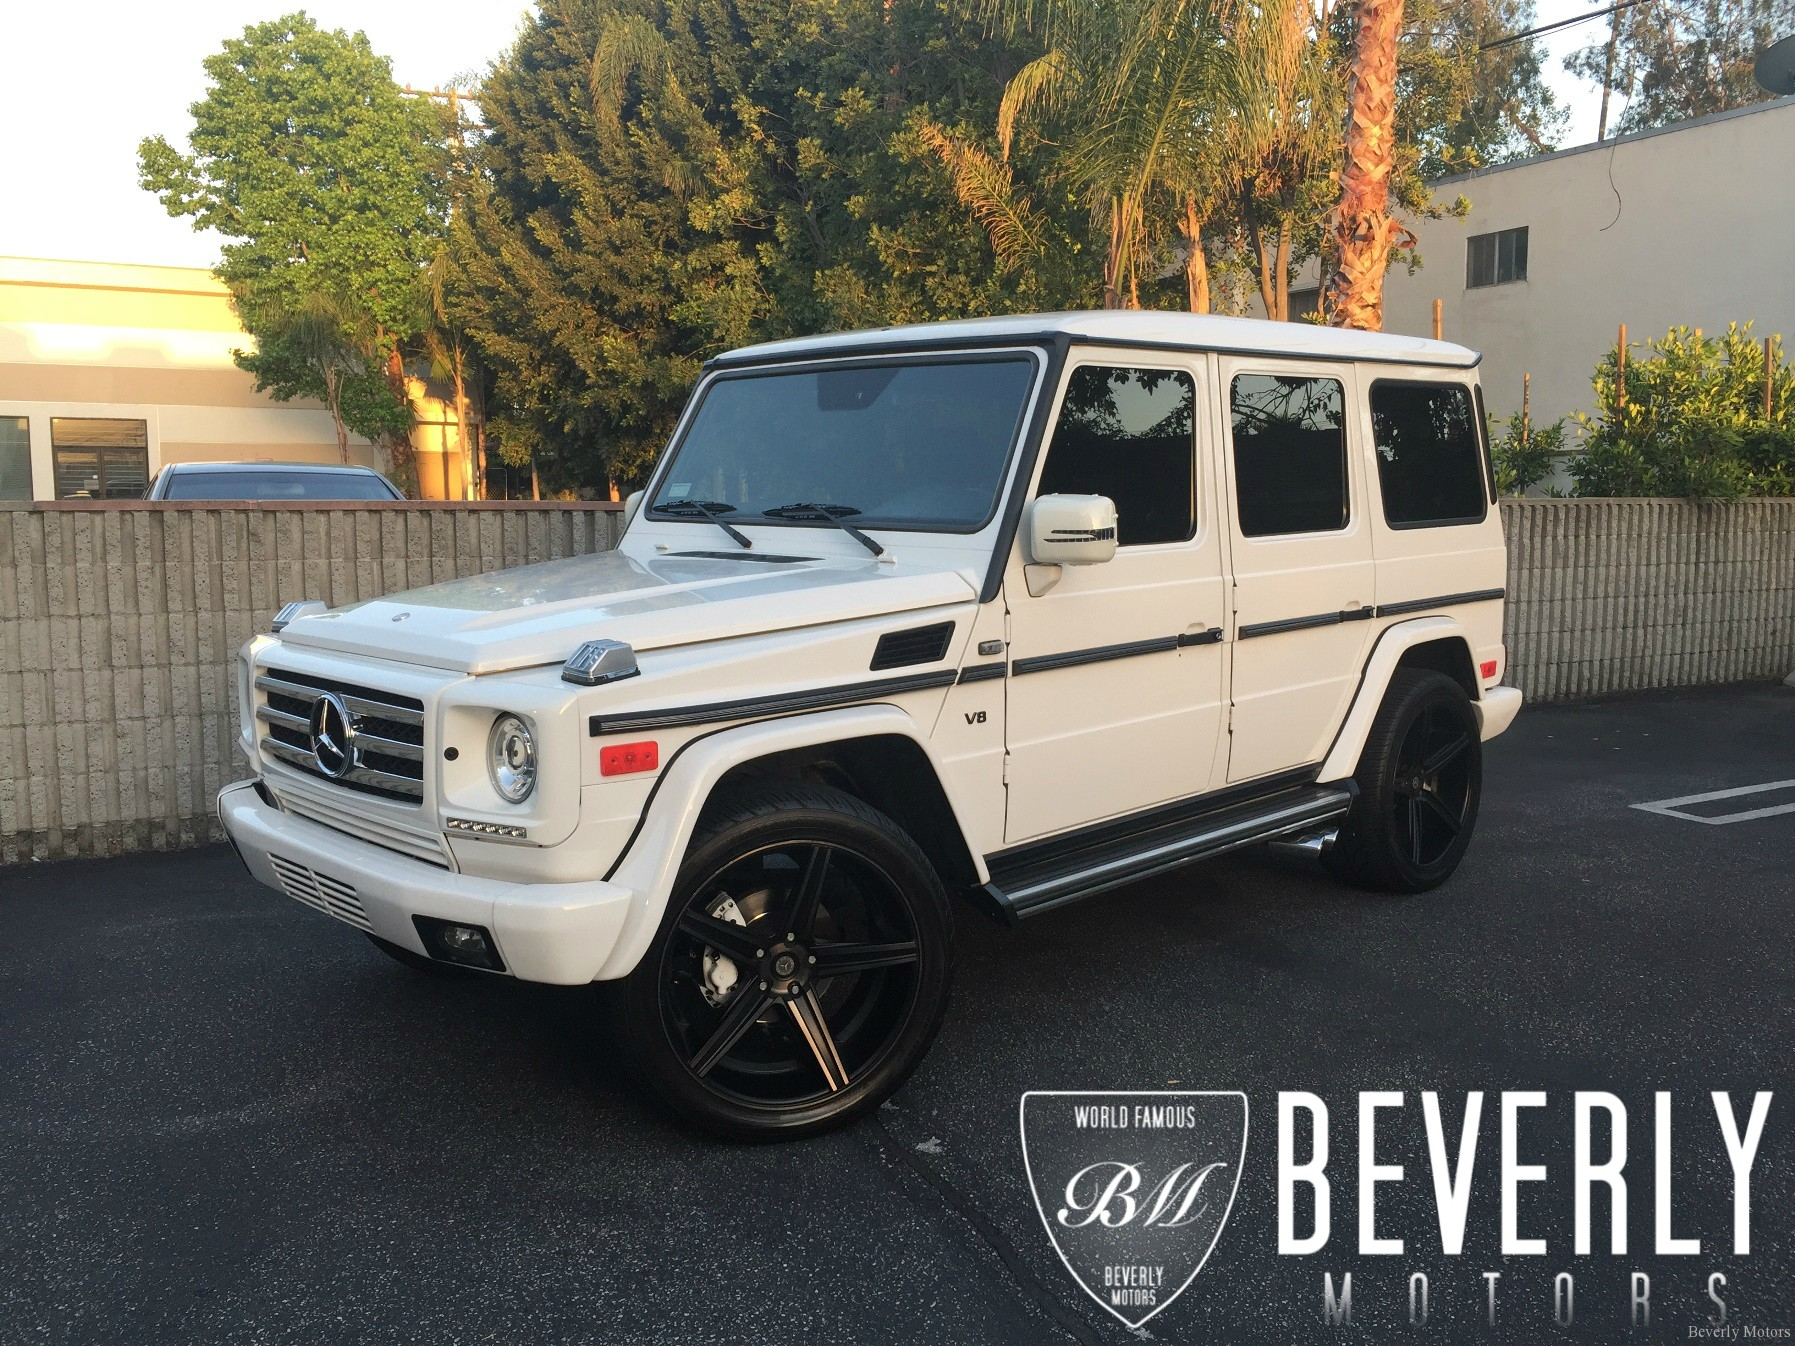 2002 mercedes benz g500 white on black g55 g550 amg brabus gwagon gwagen gelik wald black bison hamann g class for sale 66